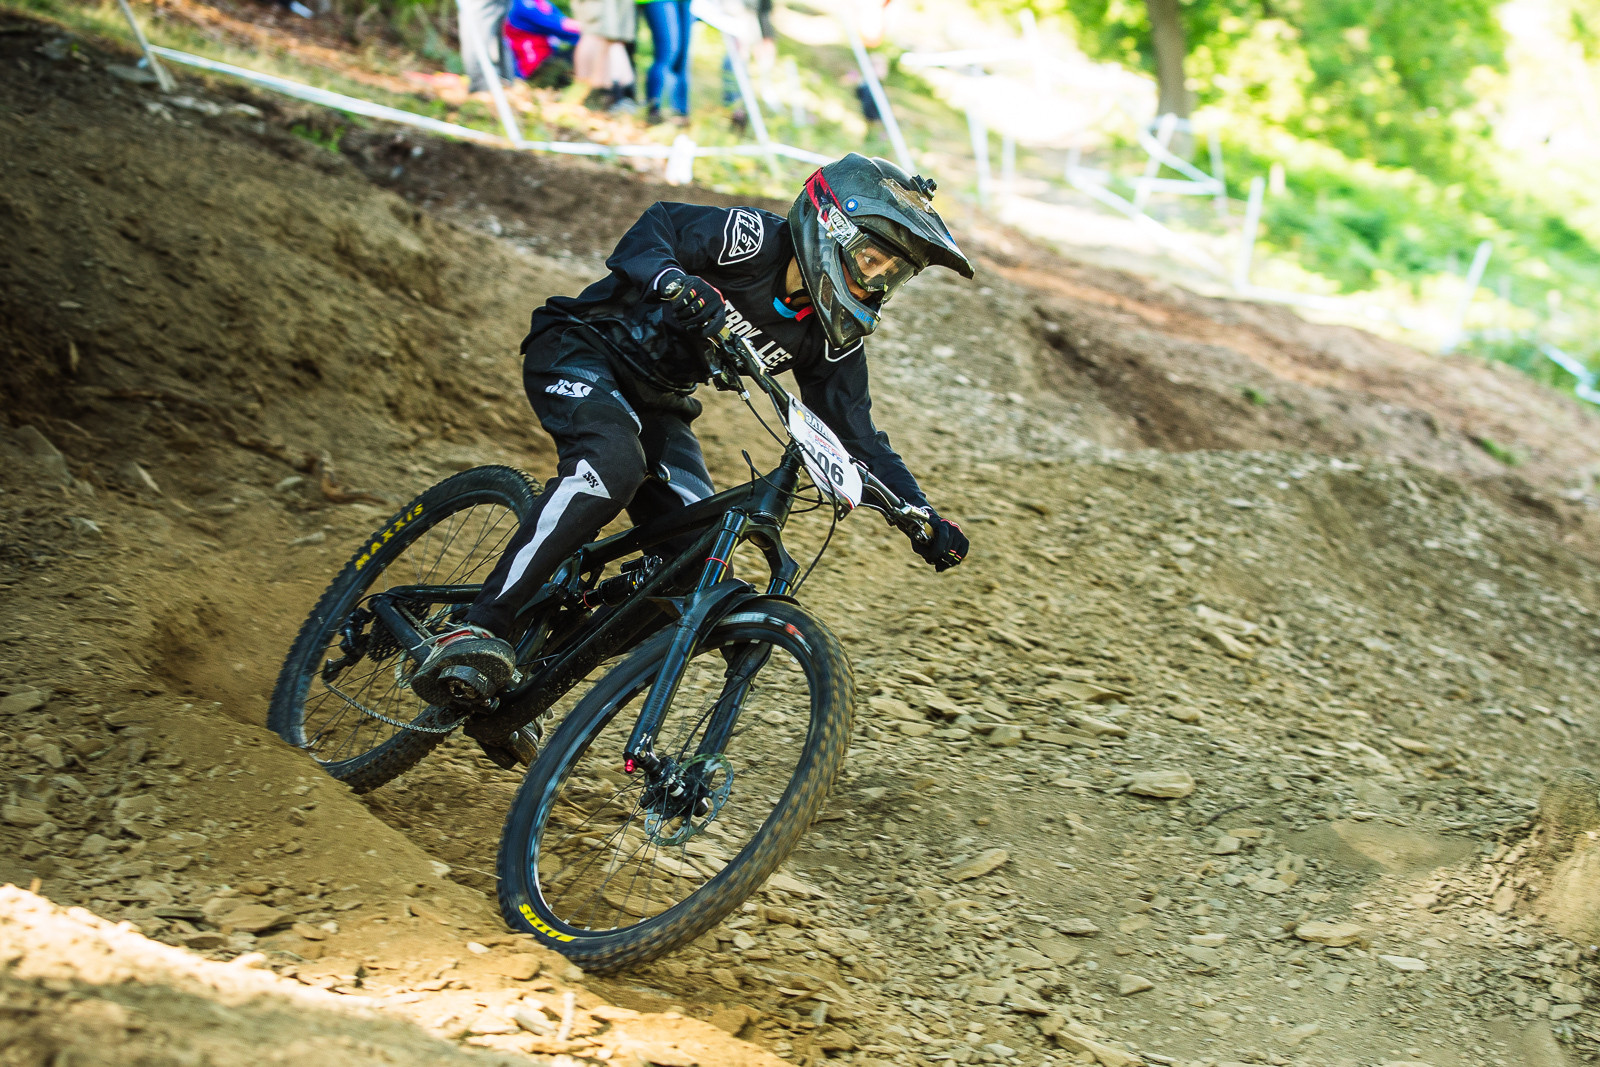 Sam Cofano - 2015 British National Champs Downhill - 2015 British National Champs Downhill Photos - Mountain Biking Pictures - Vital MTB